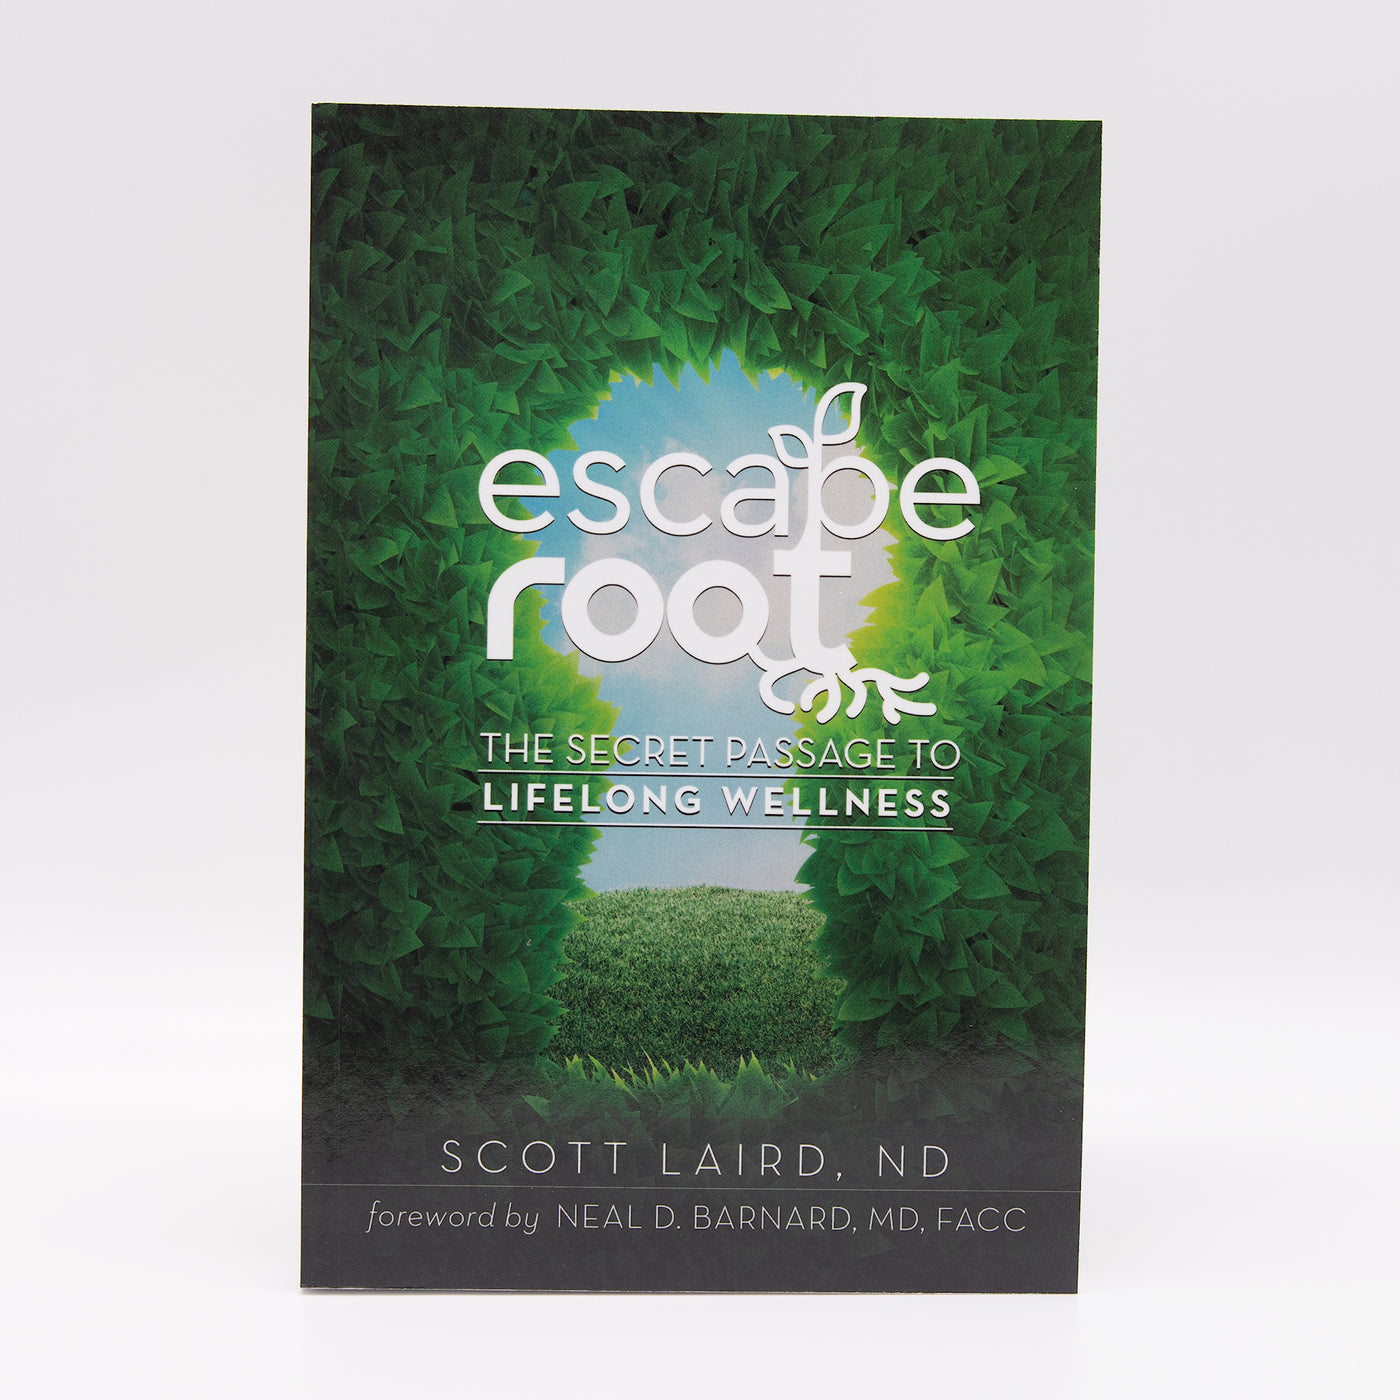 Escape Root: The Secret Passage to Lifelong Wellness